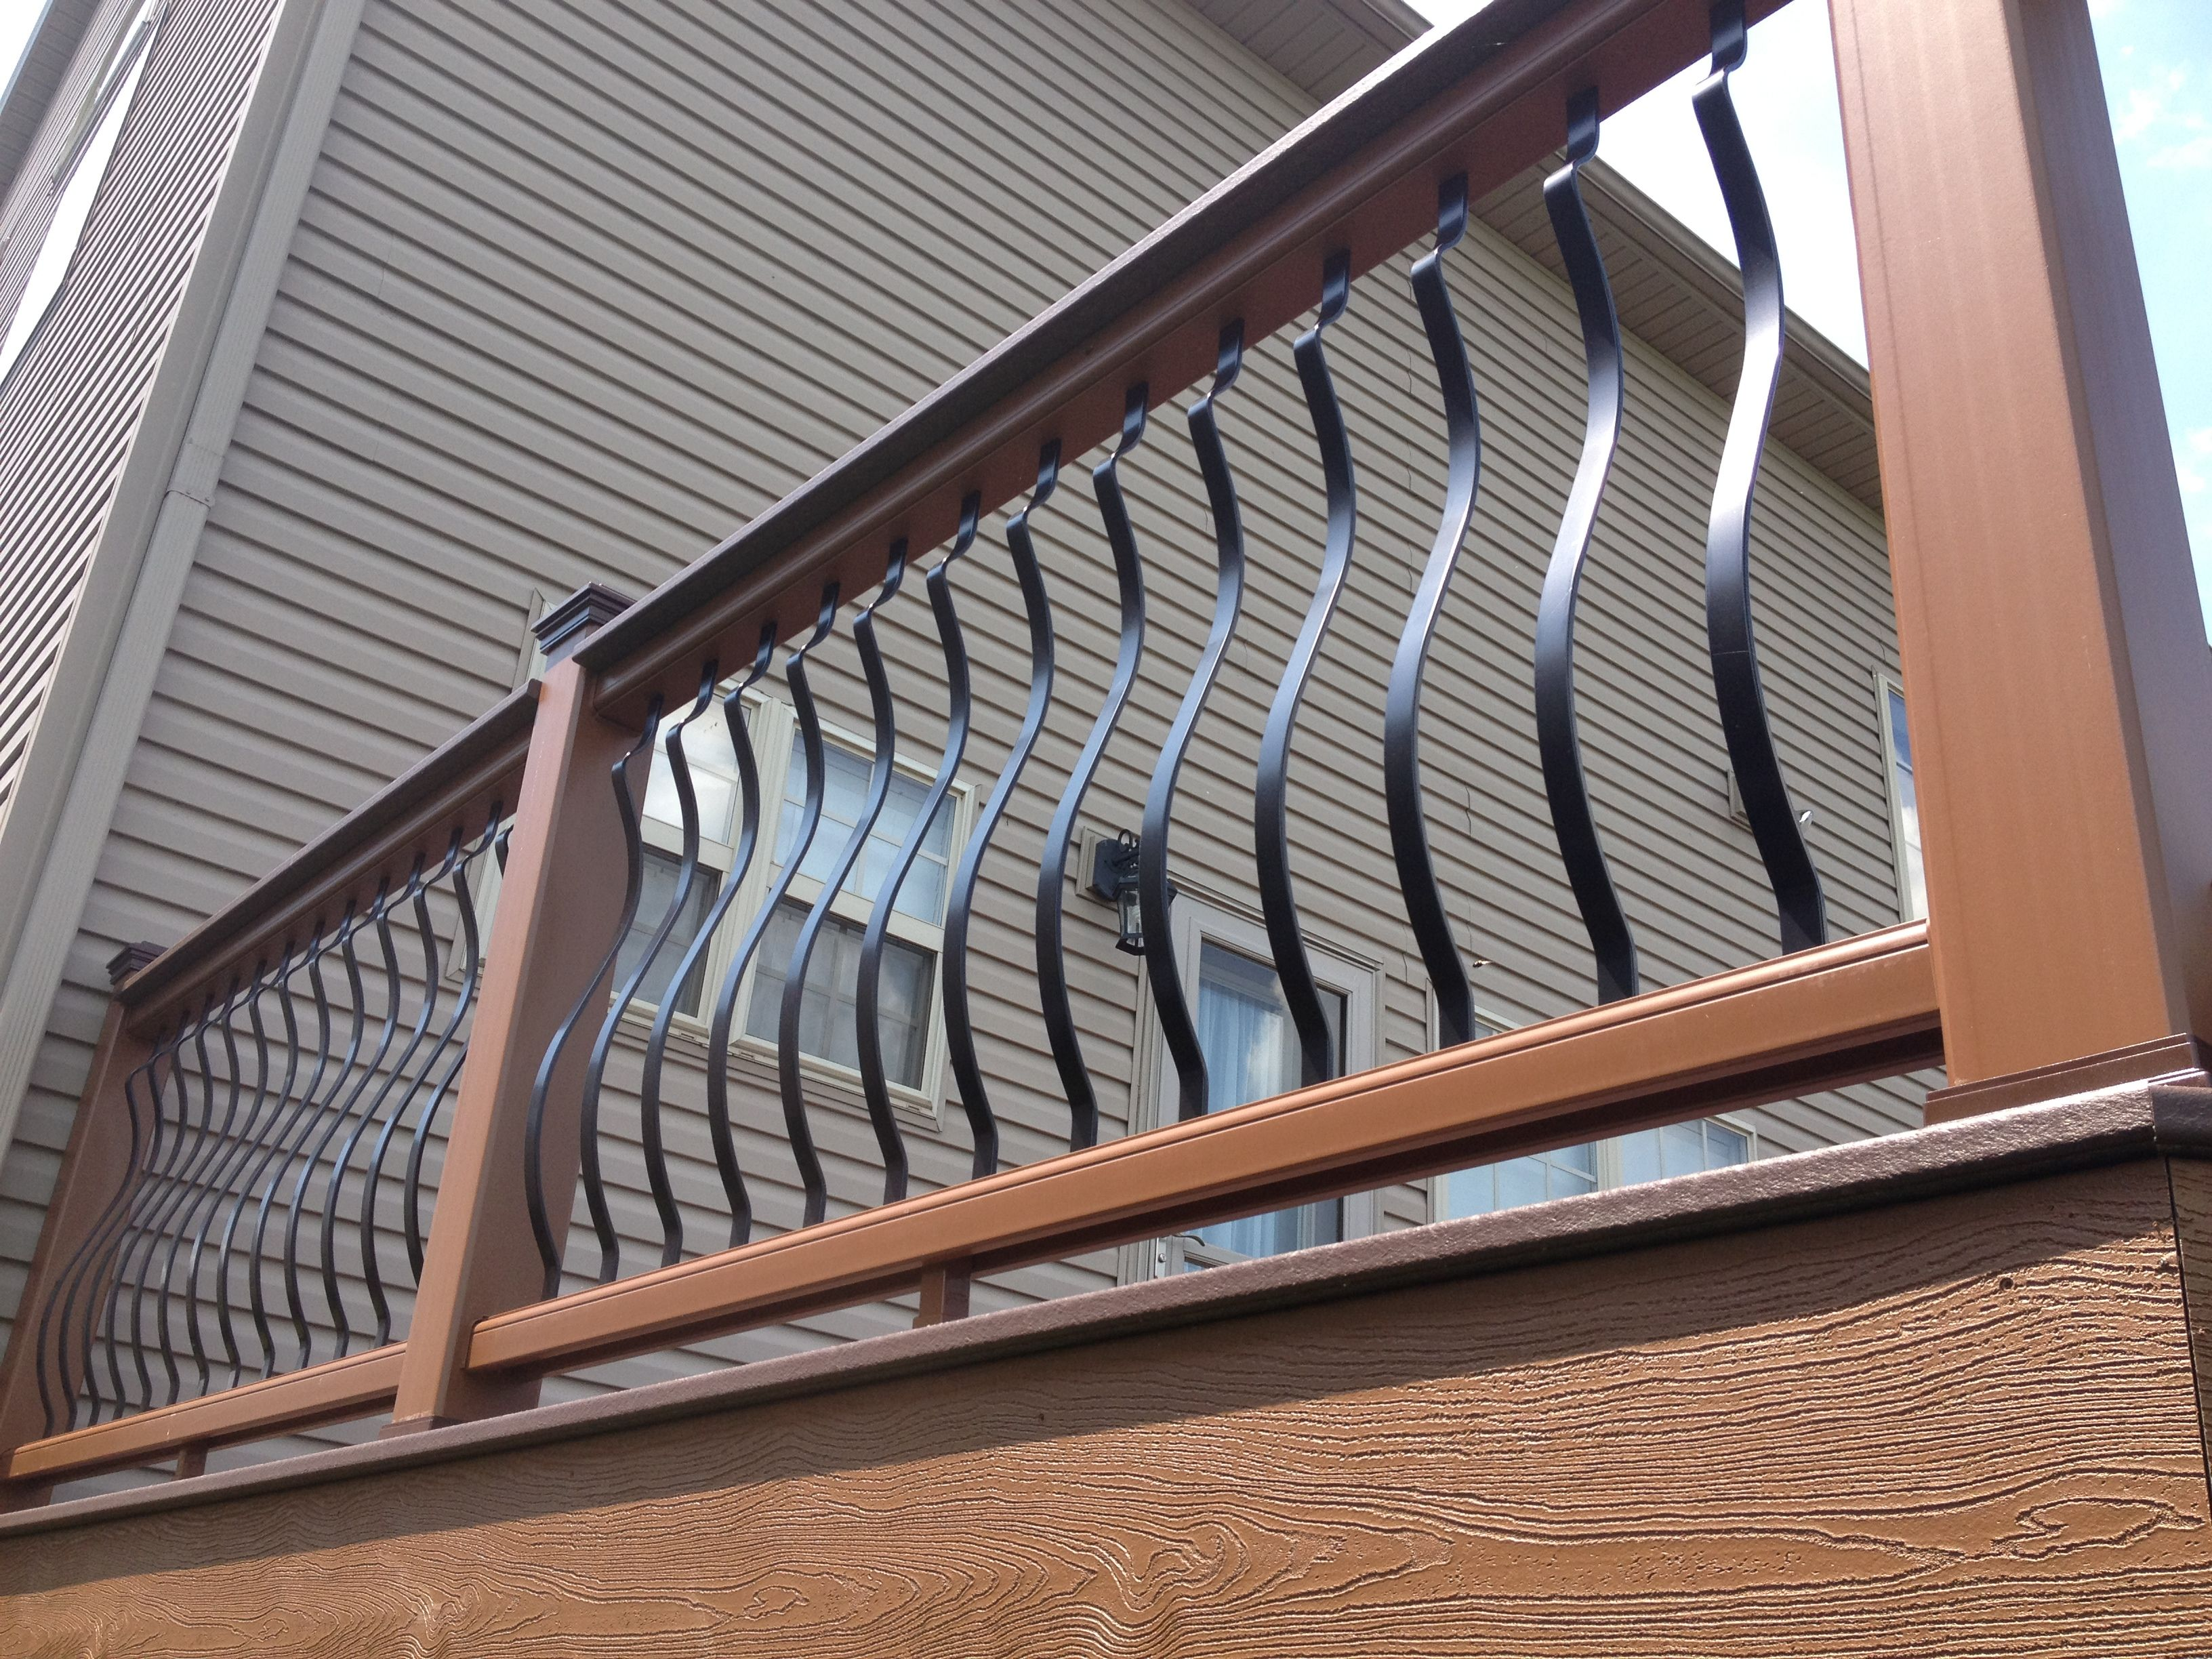 Architectural aluminum spindles with a trex transcends cocktail architectural aluminum spindles with a trex transcends cocktail railing baanklon Images